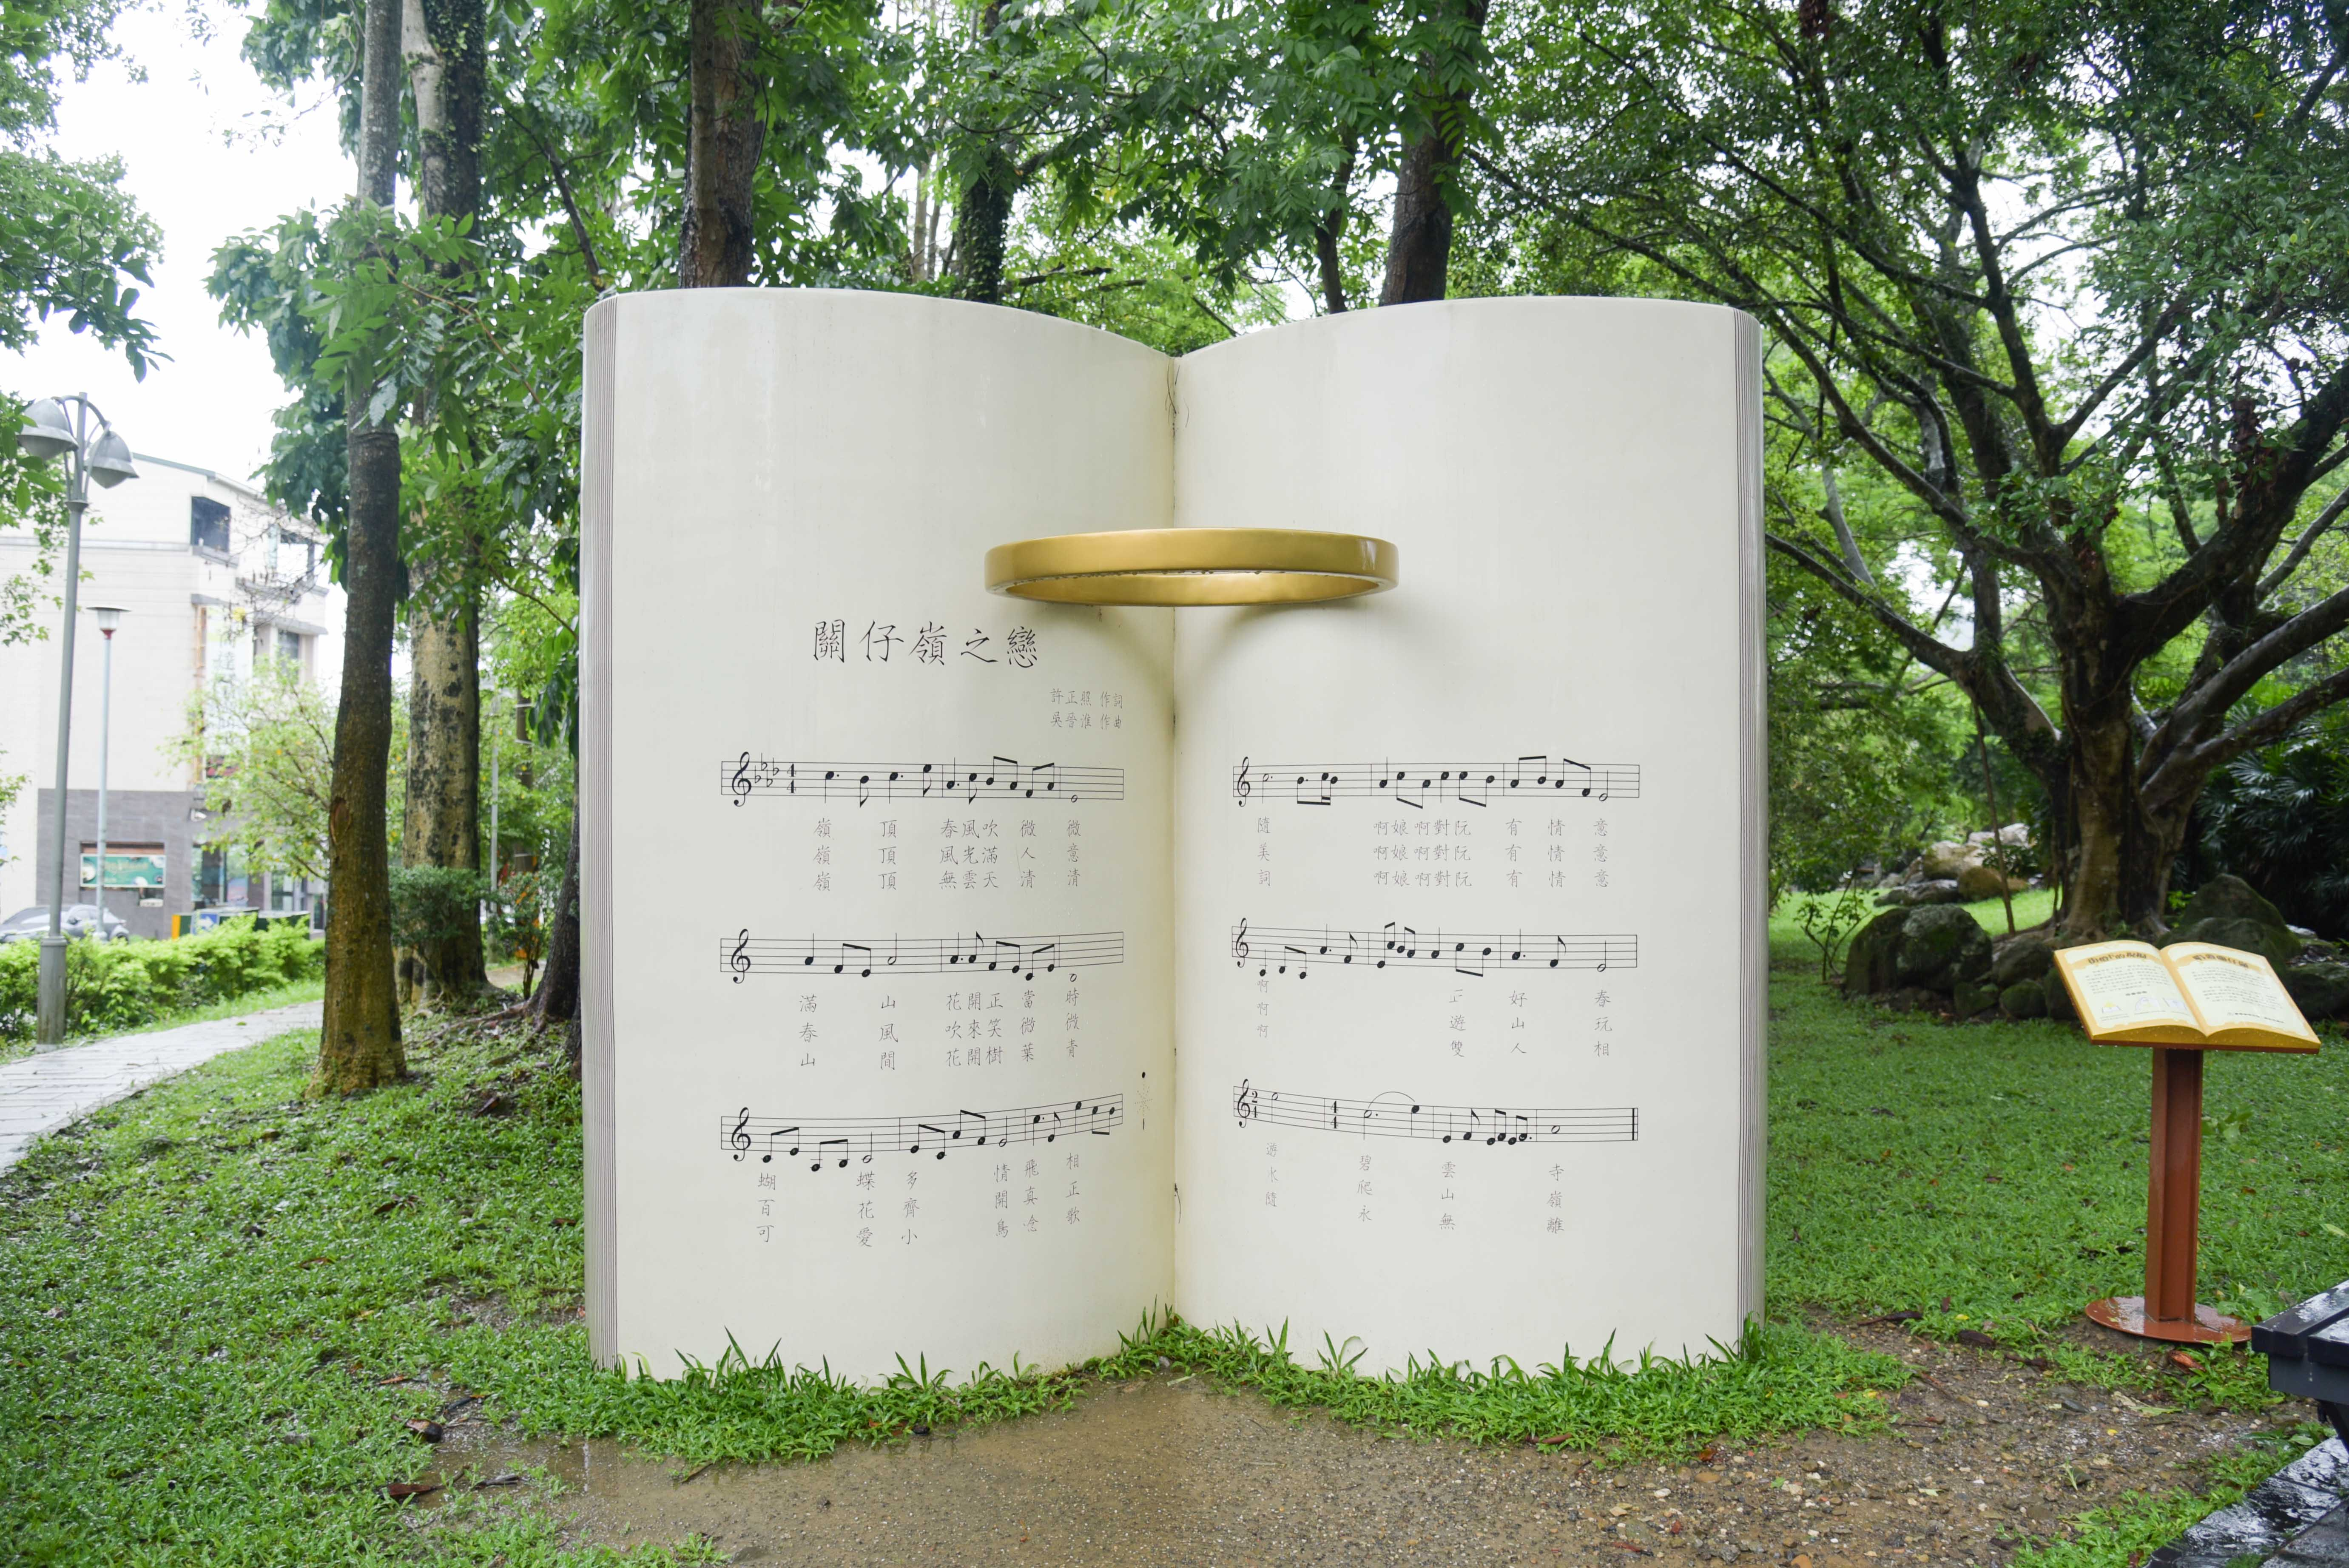 The Installation Art Of Music Score